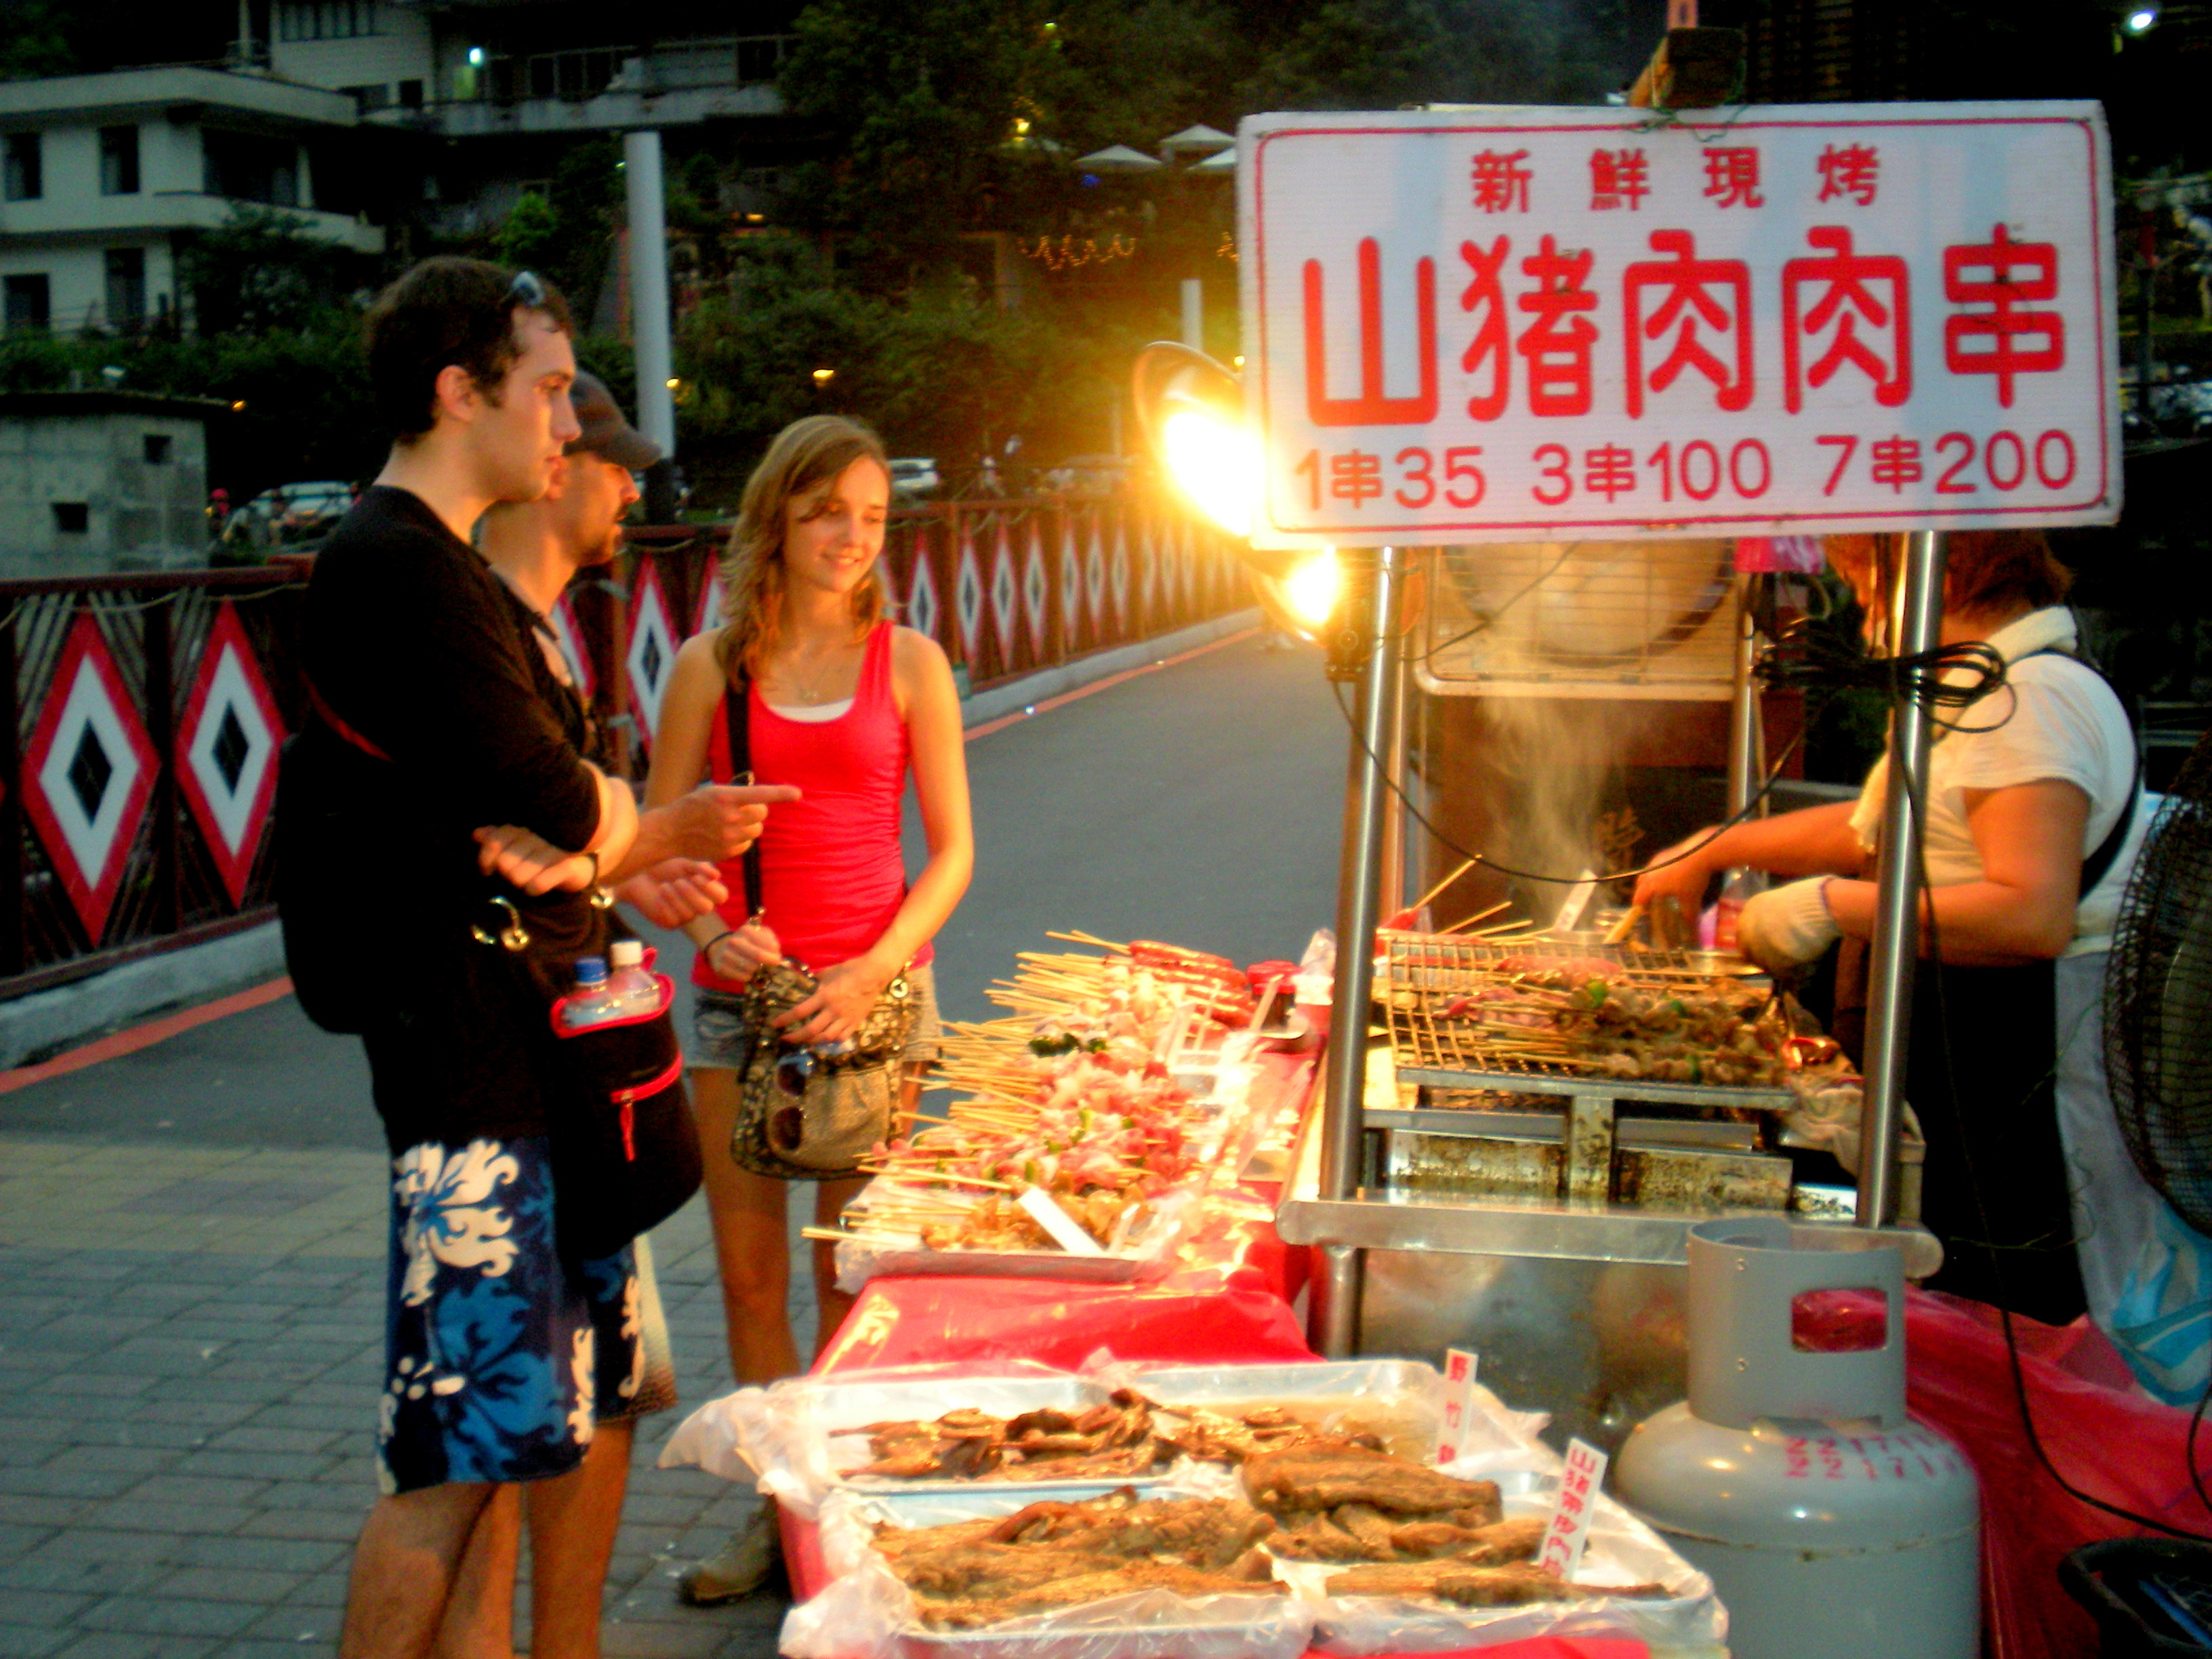 Street food in Wu Lai, Taiwan